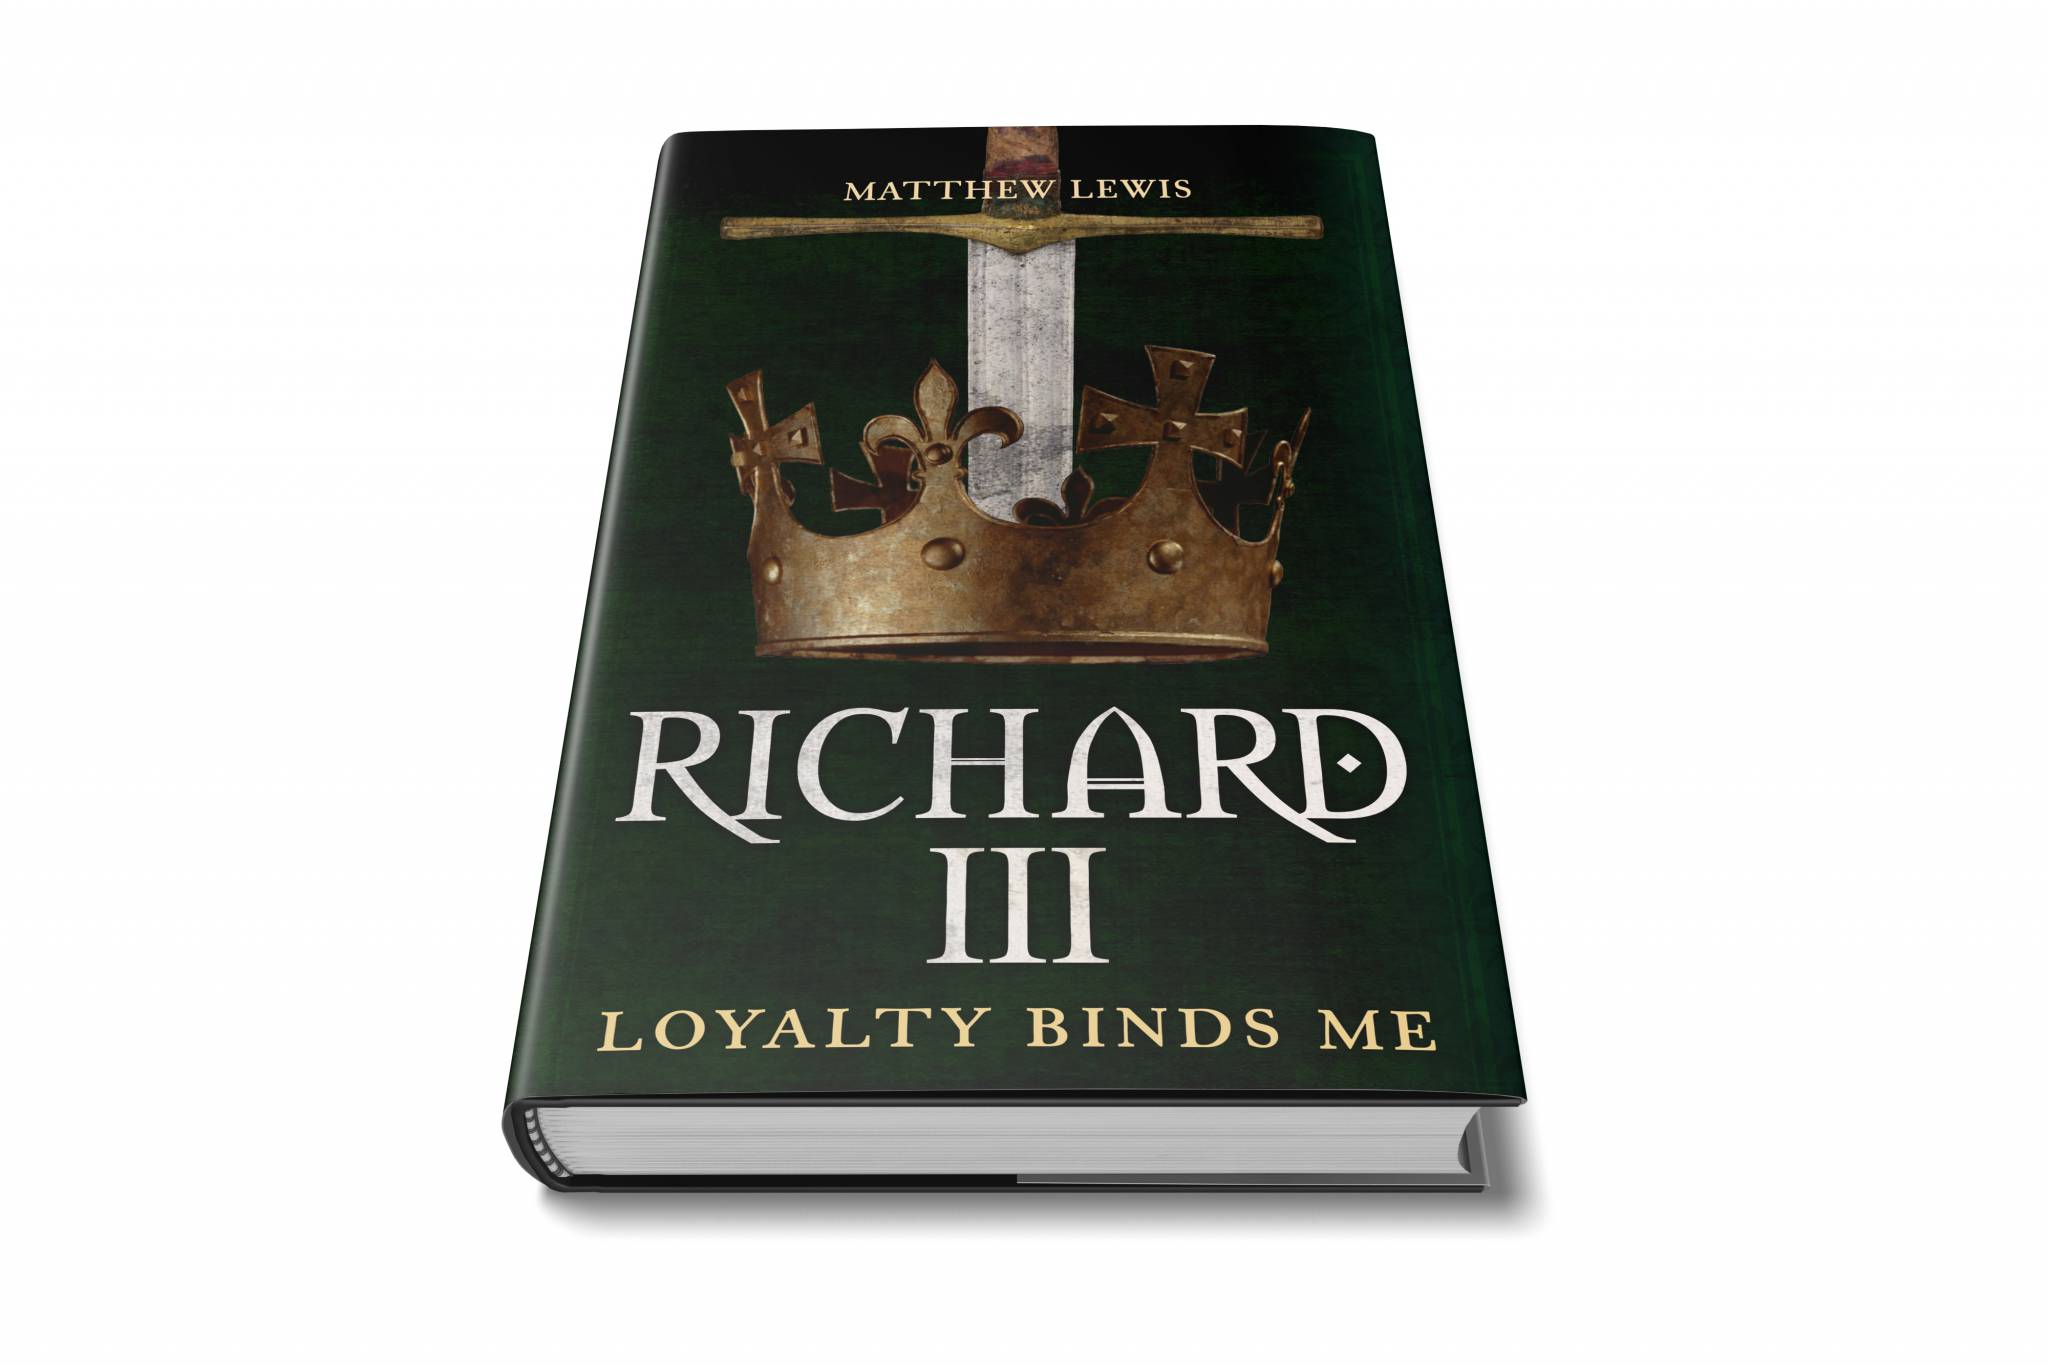 Matthew Lewis Talk - Richard III: Loyalty Binds Me